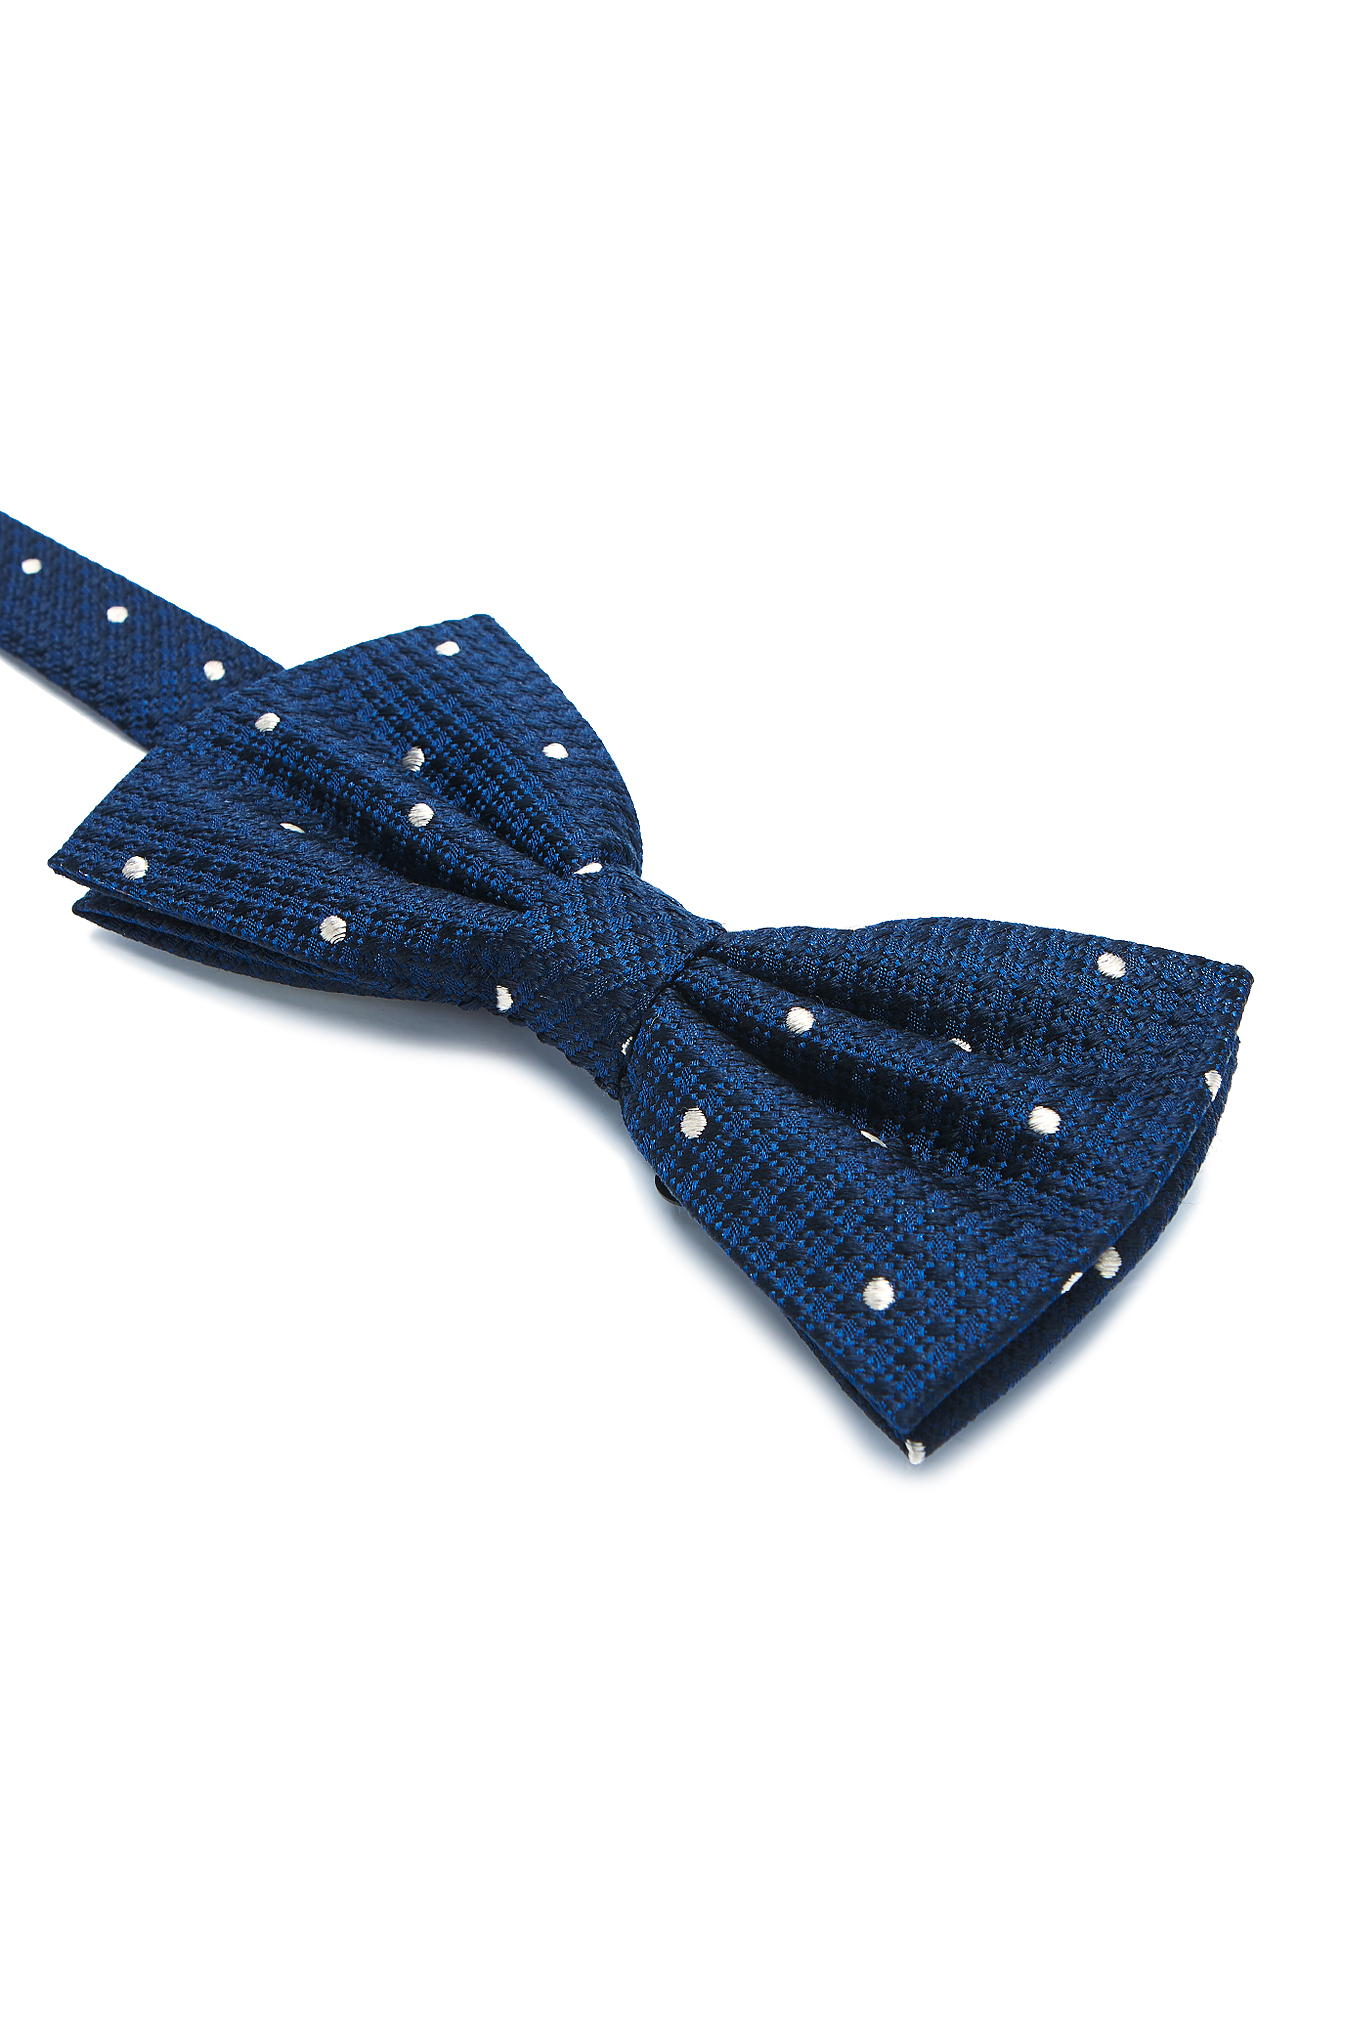 Bow Tie Dark Blue Casual Man